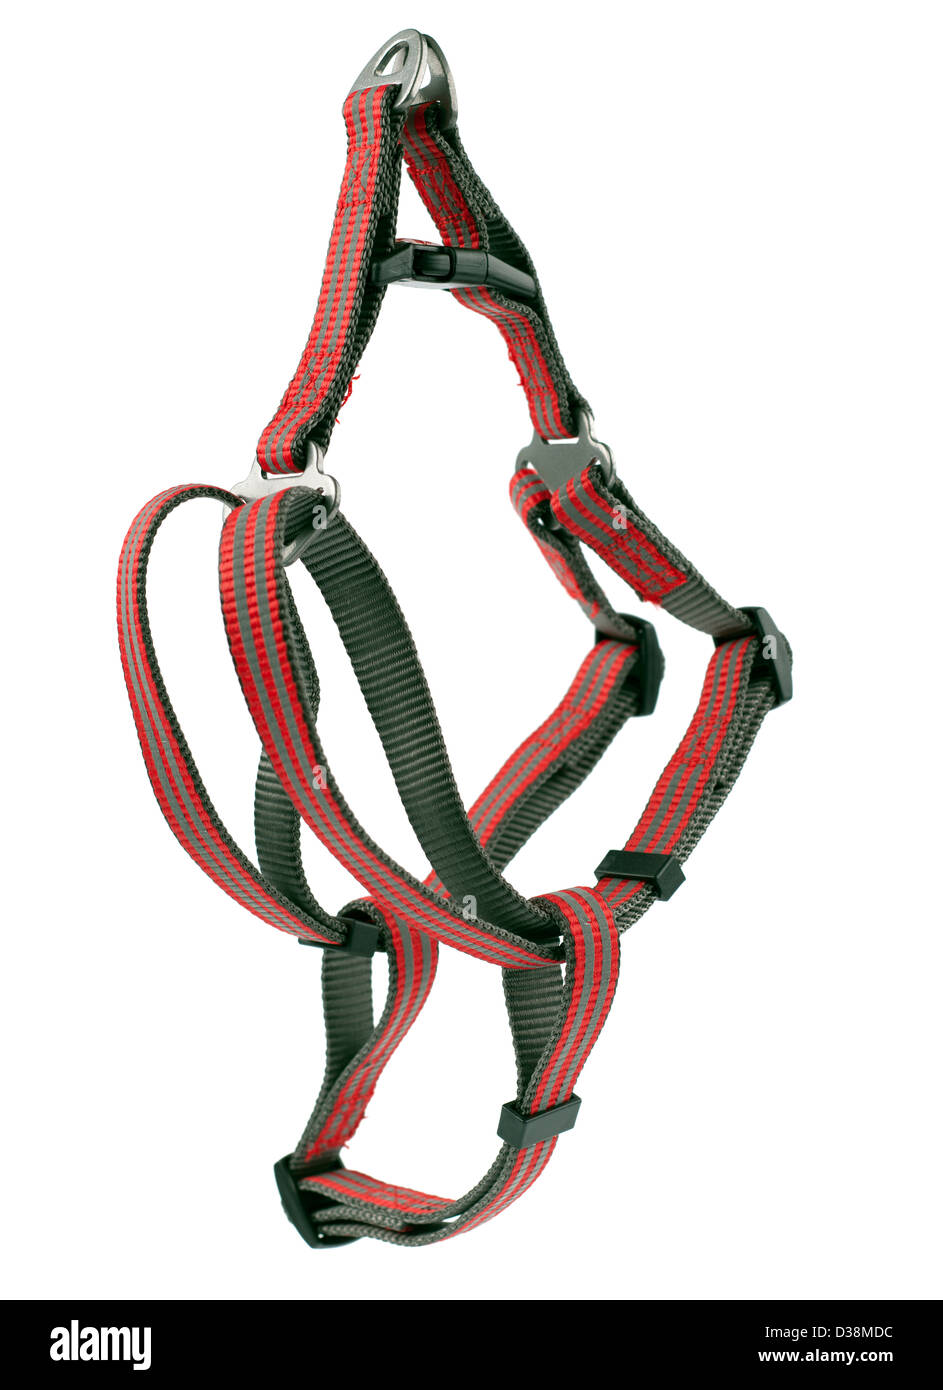 High vision red and grey dog harness size small 18' 26' 46 to 66 cms - Stock Image